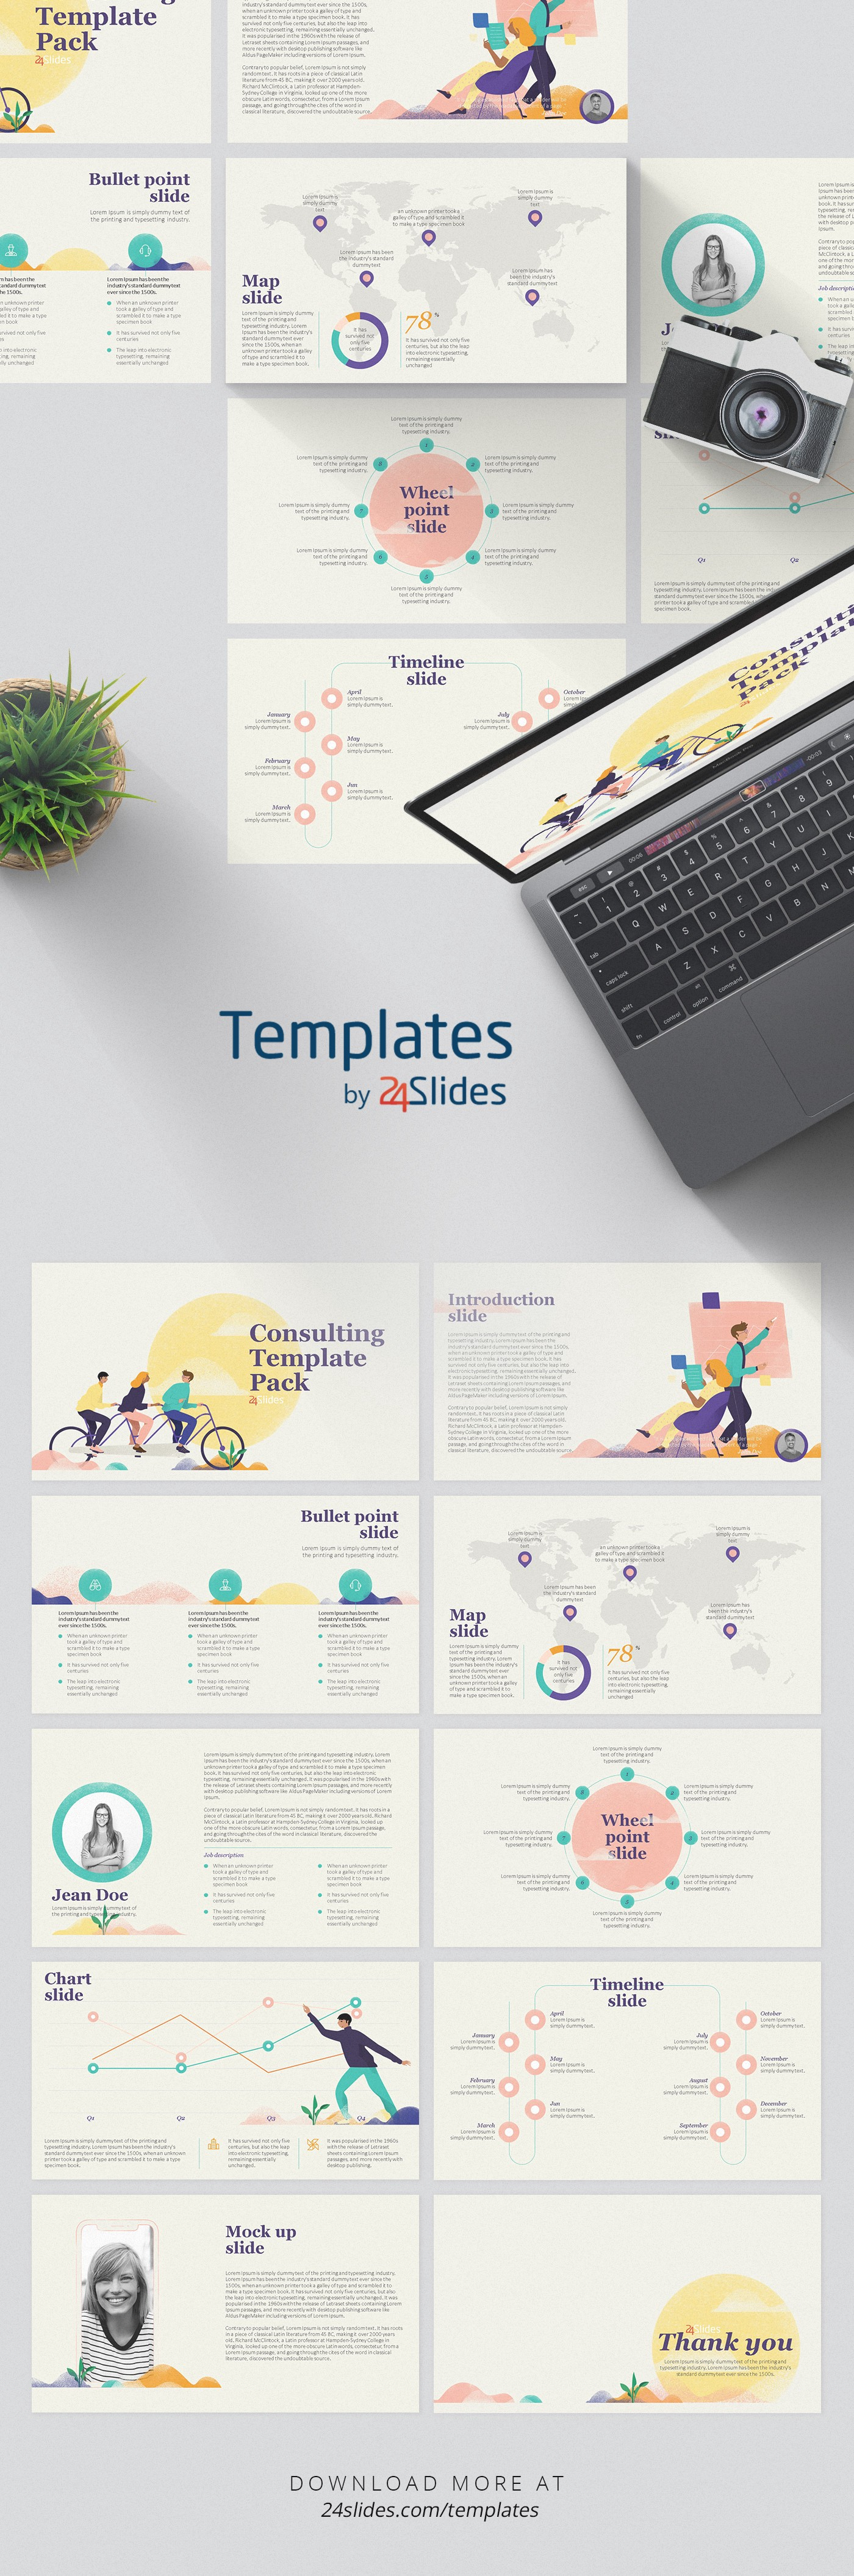 soft consulting presentation pack template free download